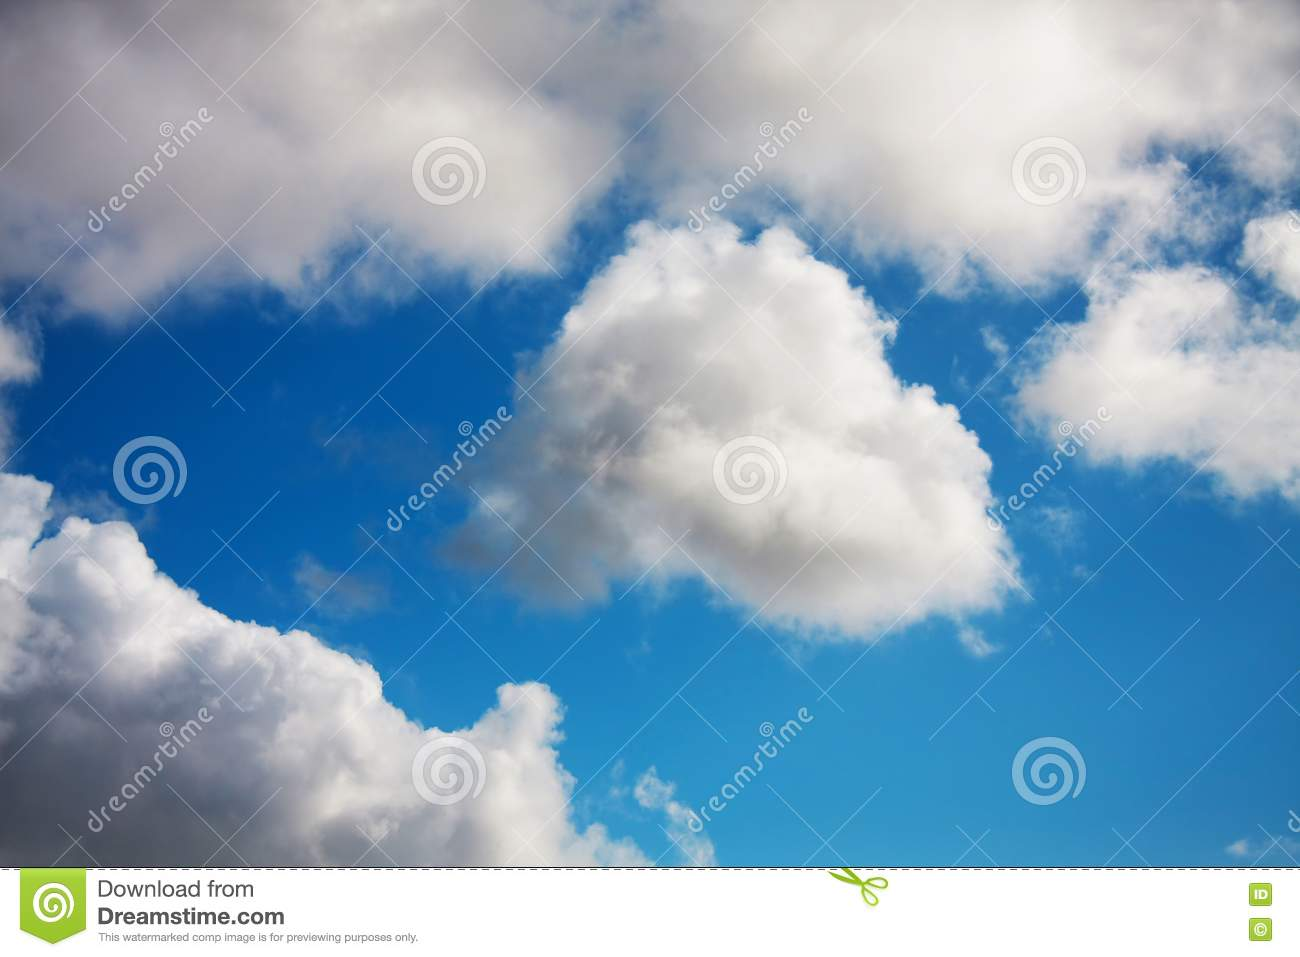 Free Stock Image White And Grey Clouds Picture Image 10225136